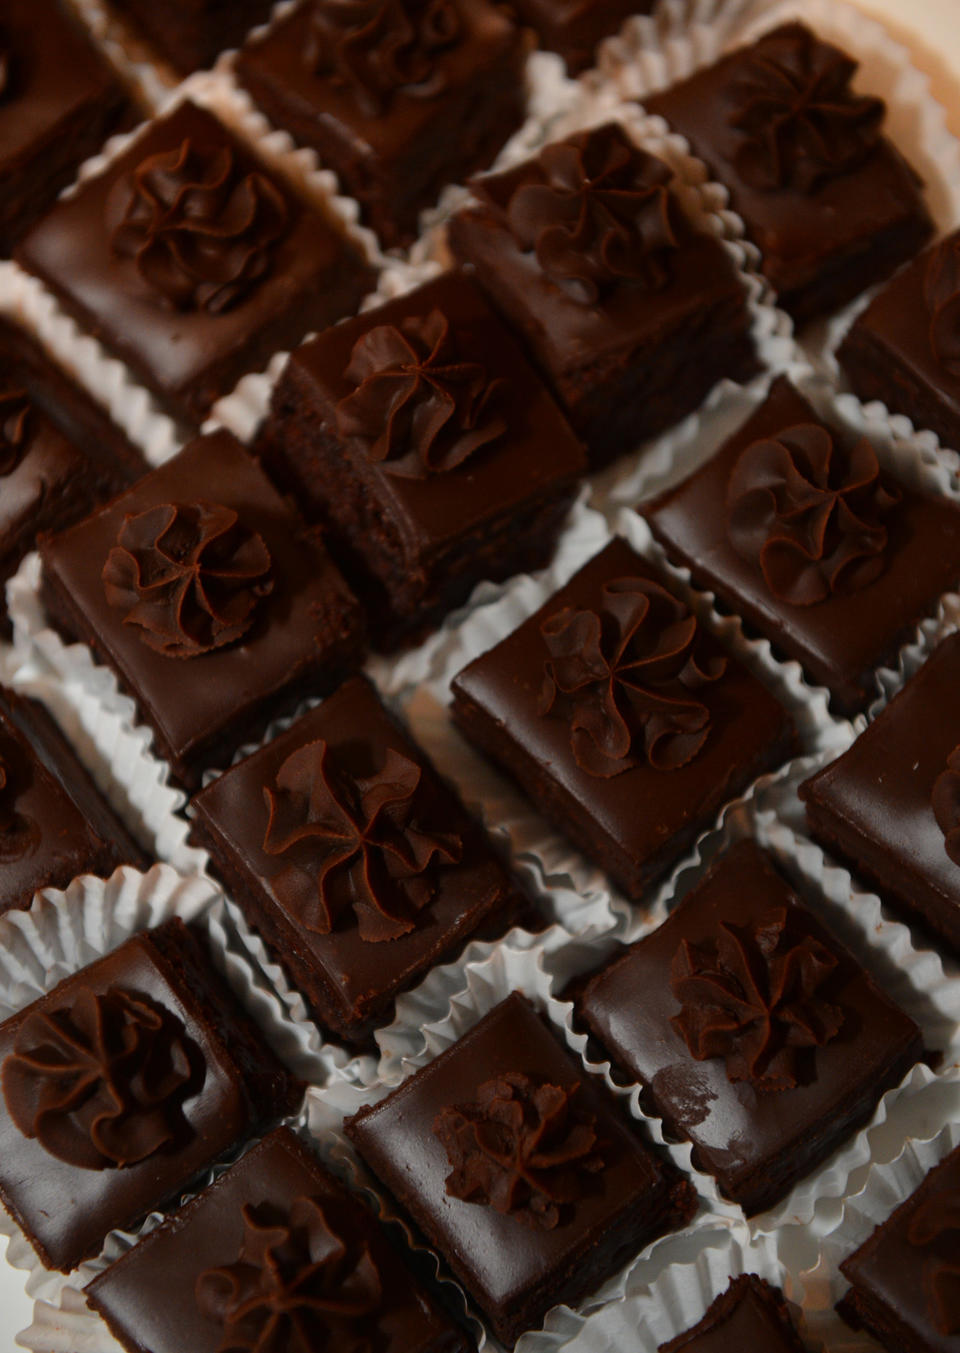 Rows of chocolate -PICTURES: Chocolate Lovers' Soiree in Easton